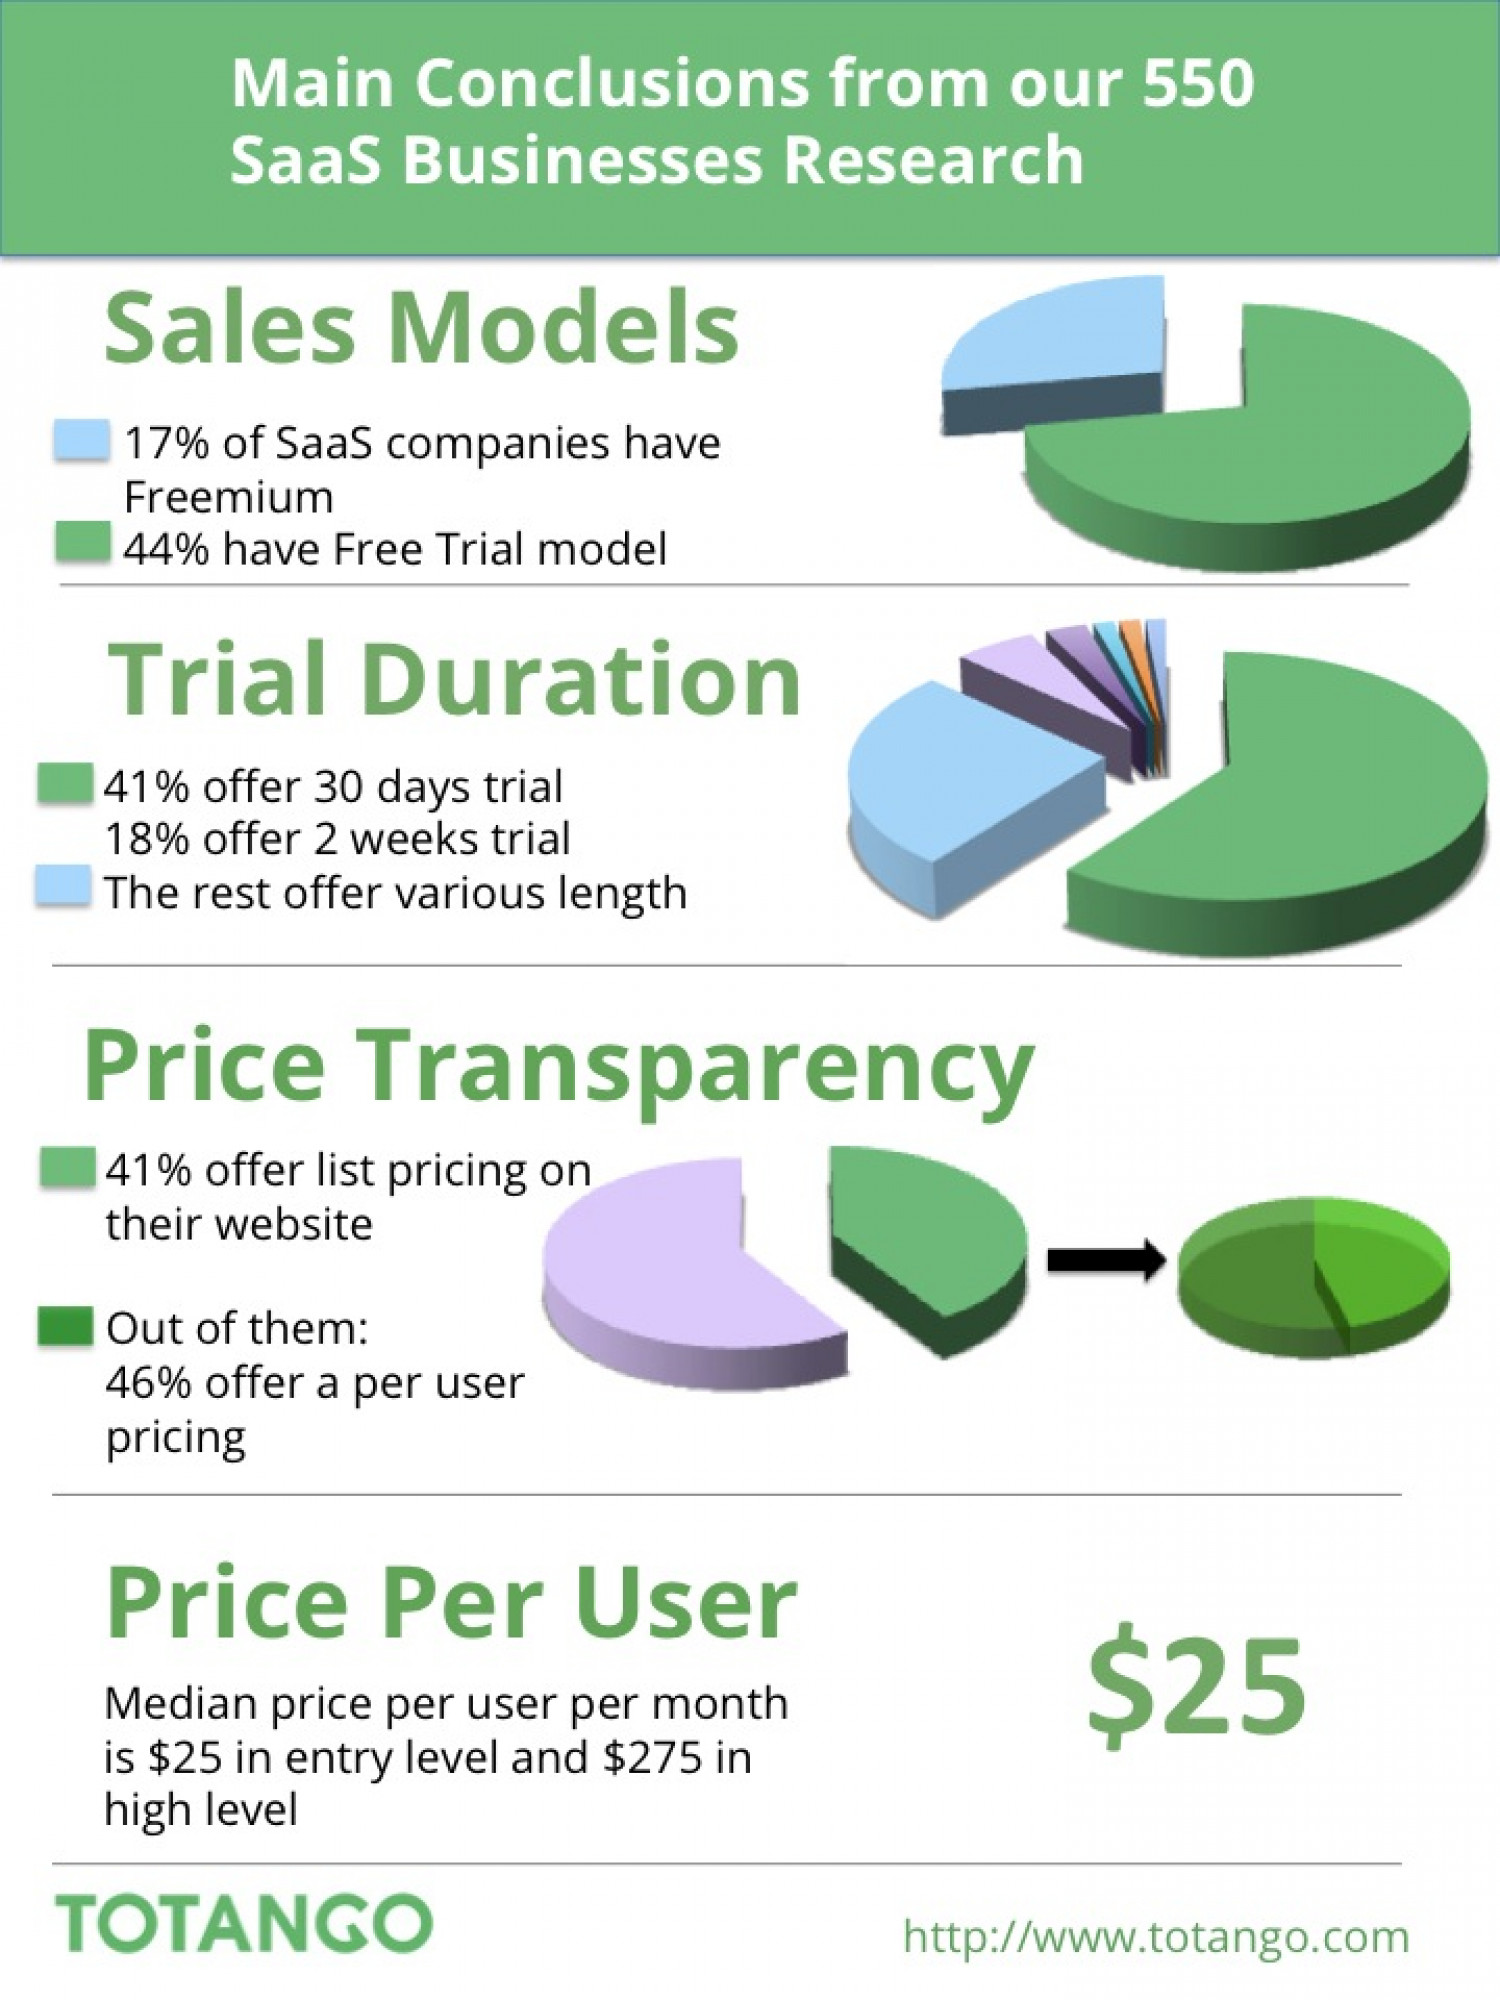 Freemium, Free Trial and Pricing Models in 550 SaaS Companies Infographic